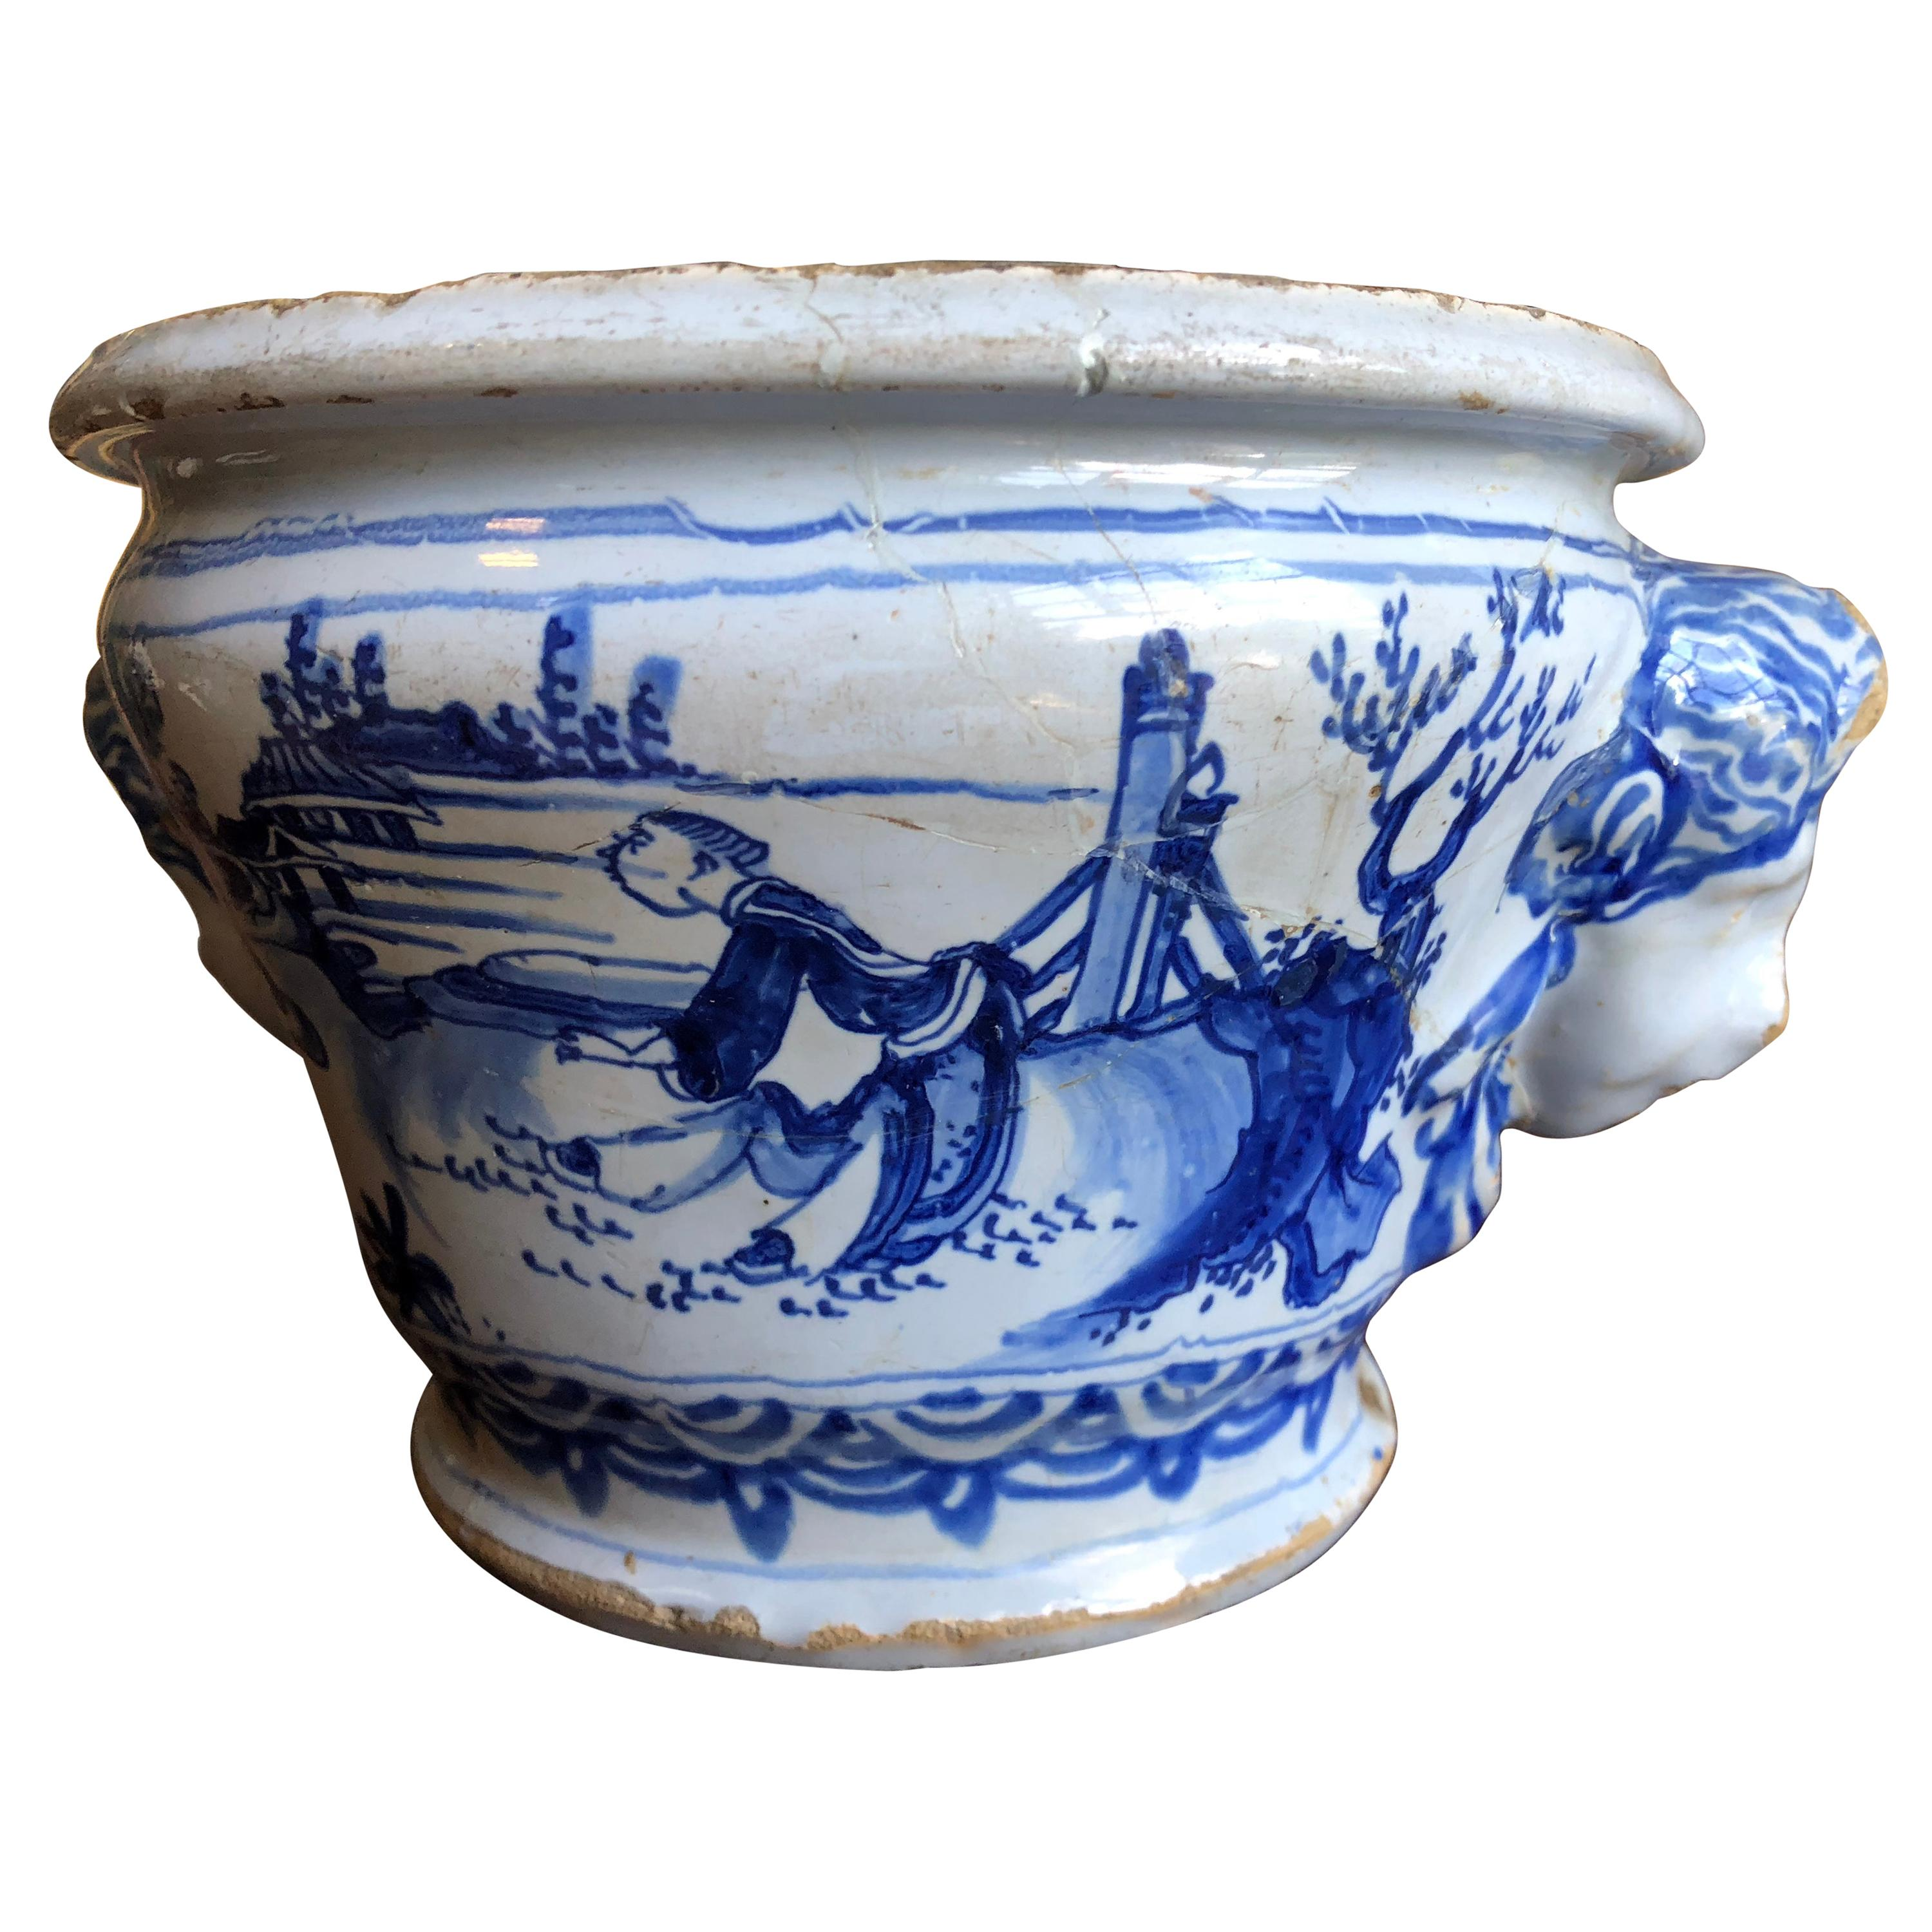 18th Century Faience Cachepot from Nevers